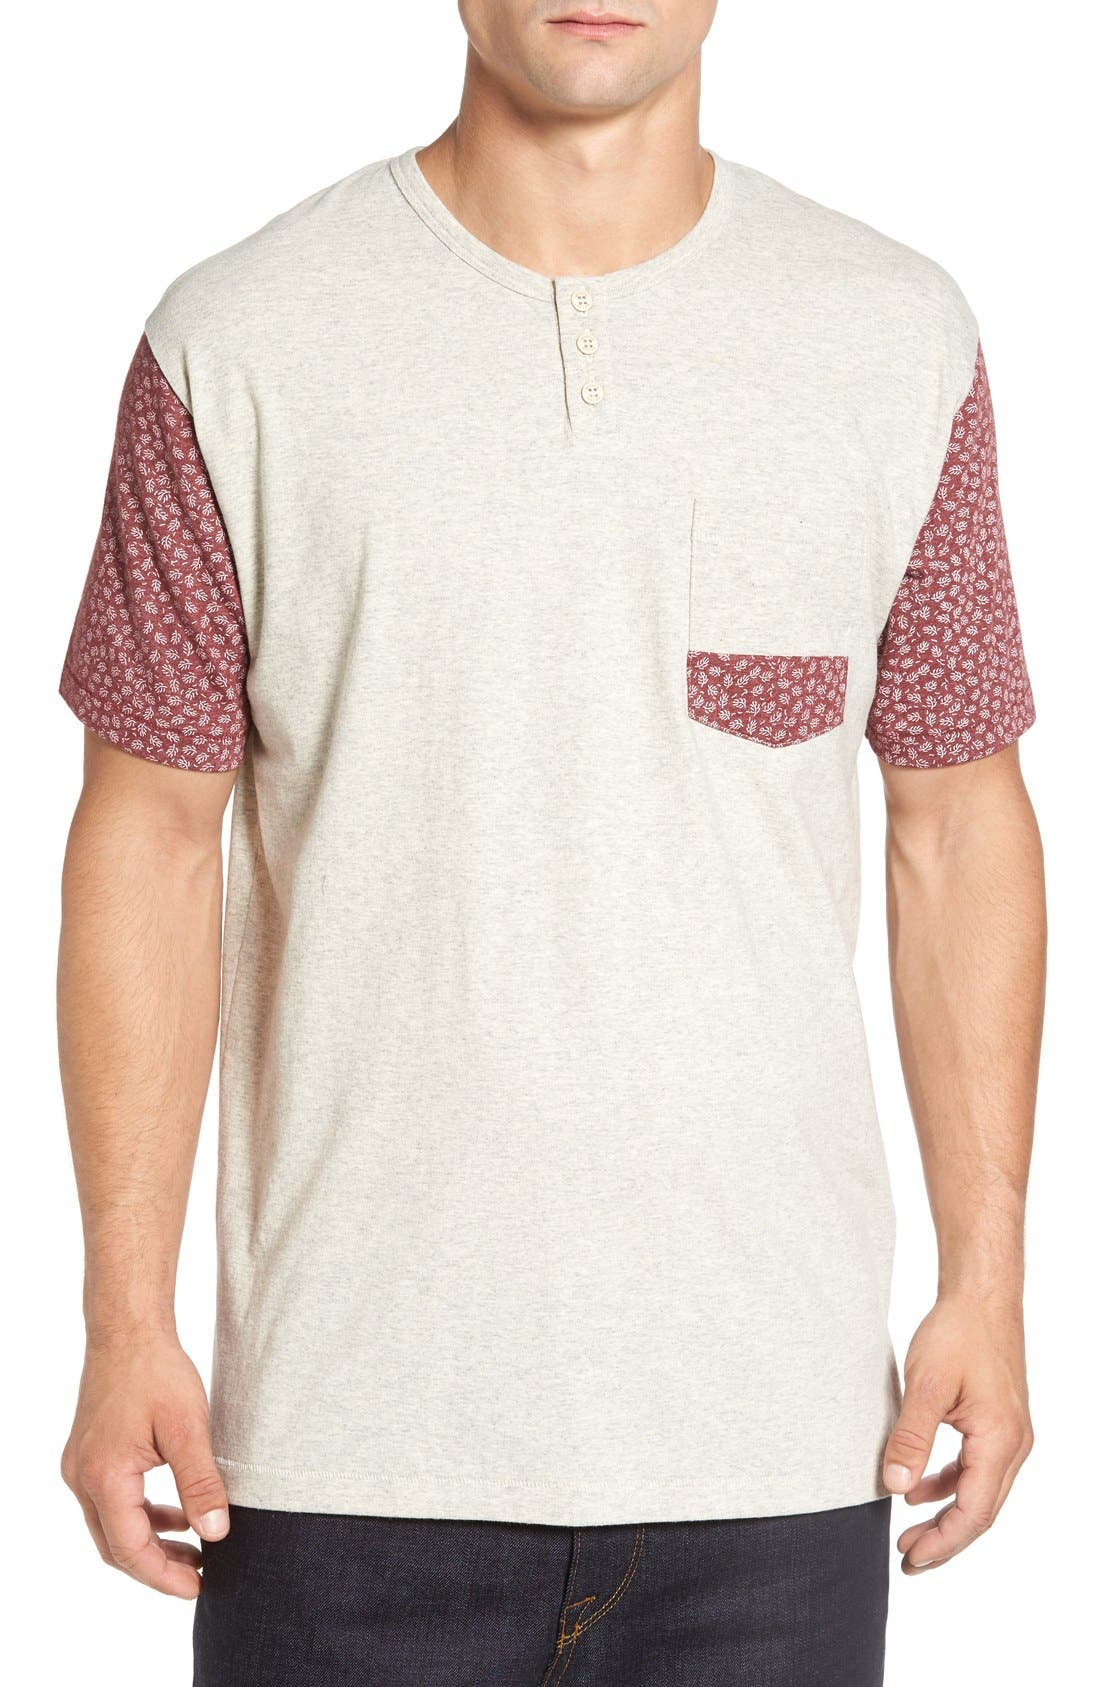 Main Image - Imperial Motion 'Harper' Short Sleeve Pocket Henley T-Shirt